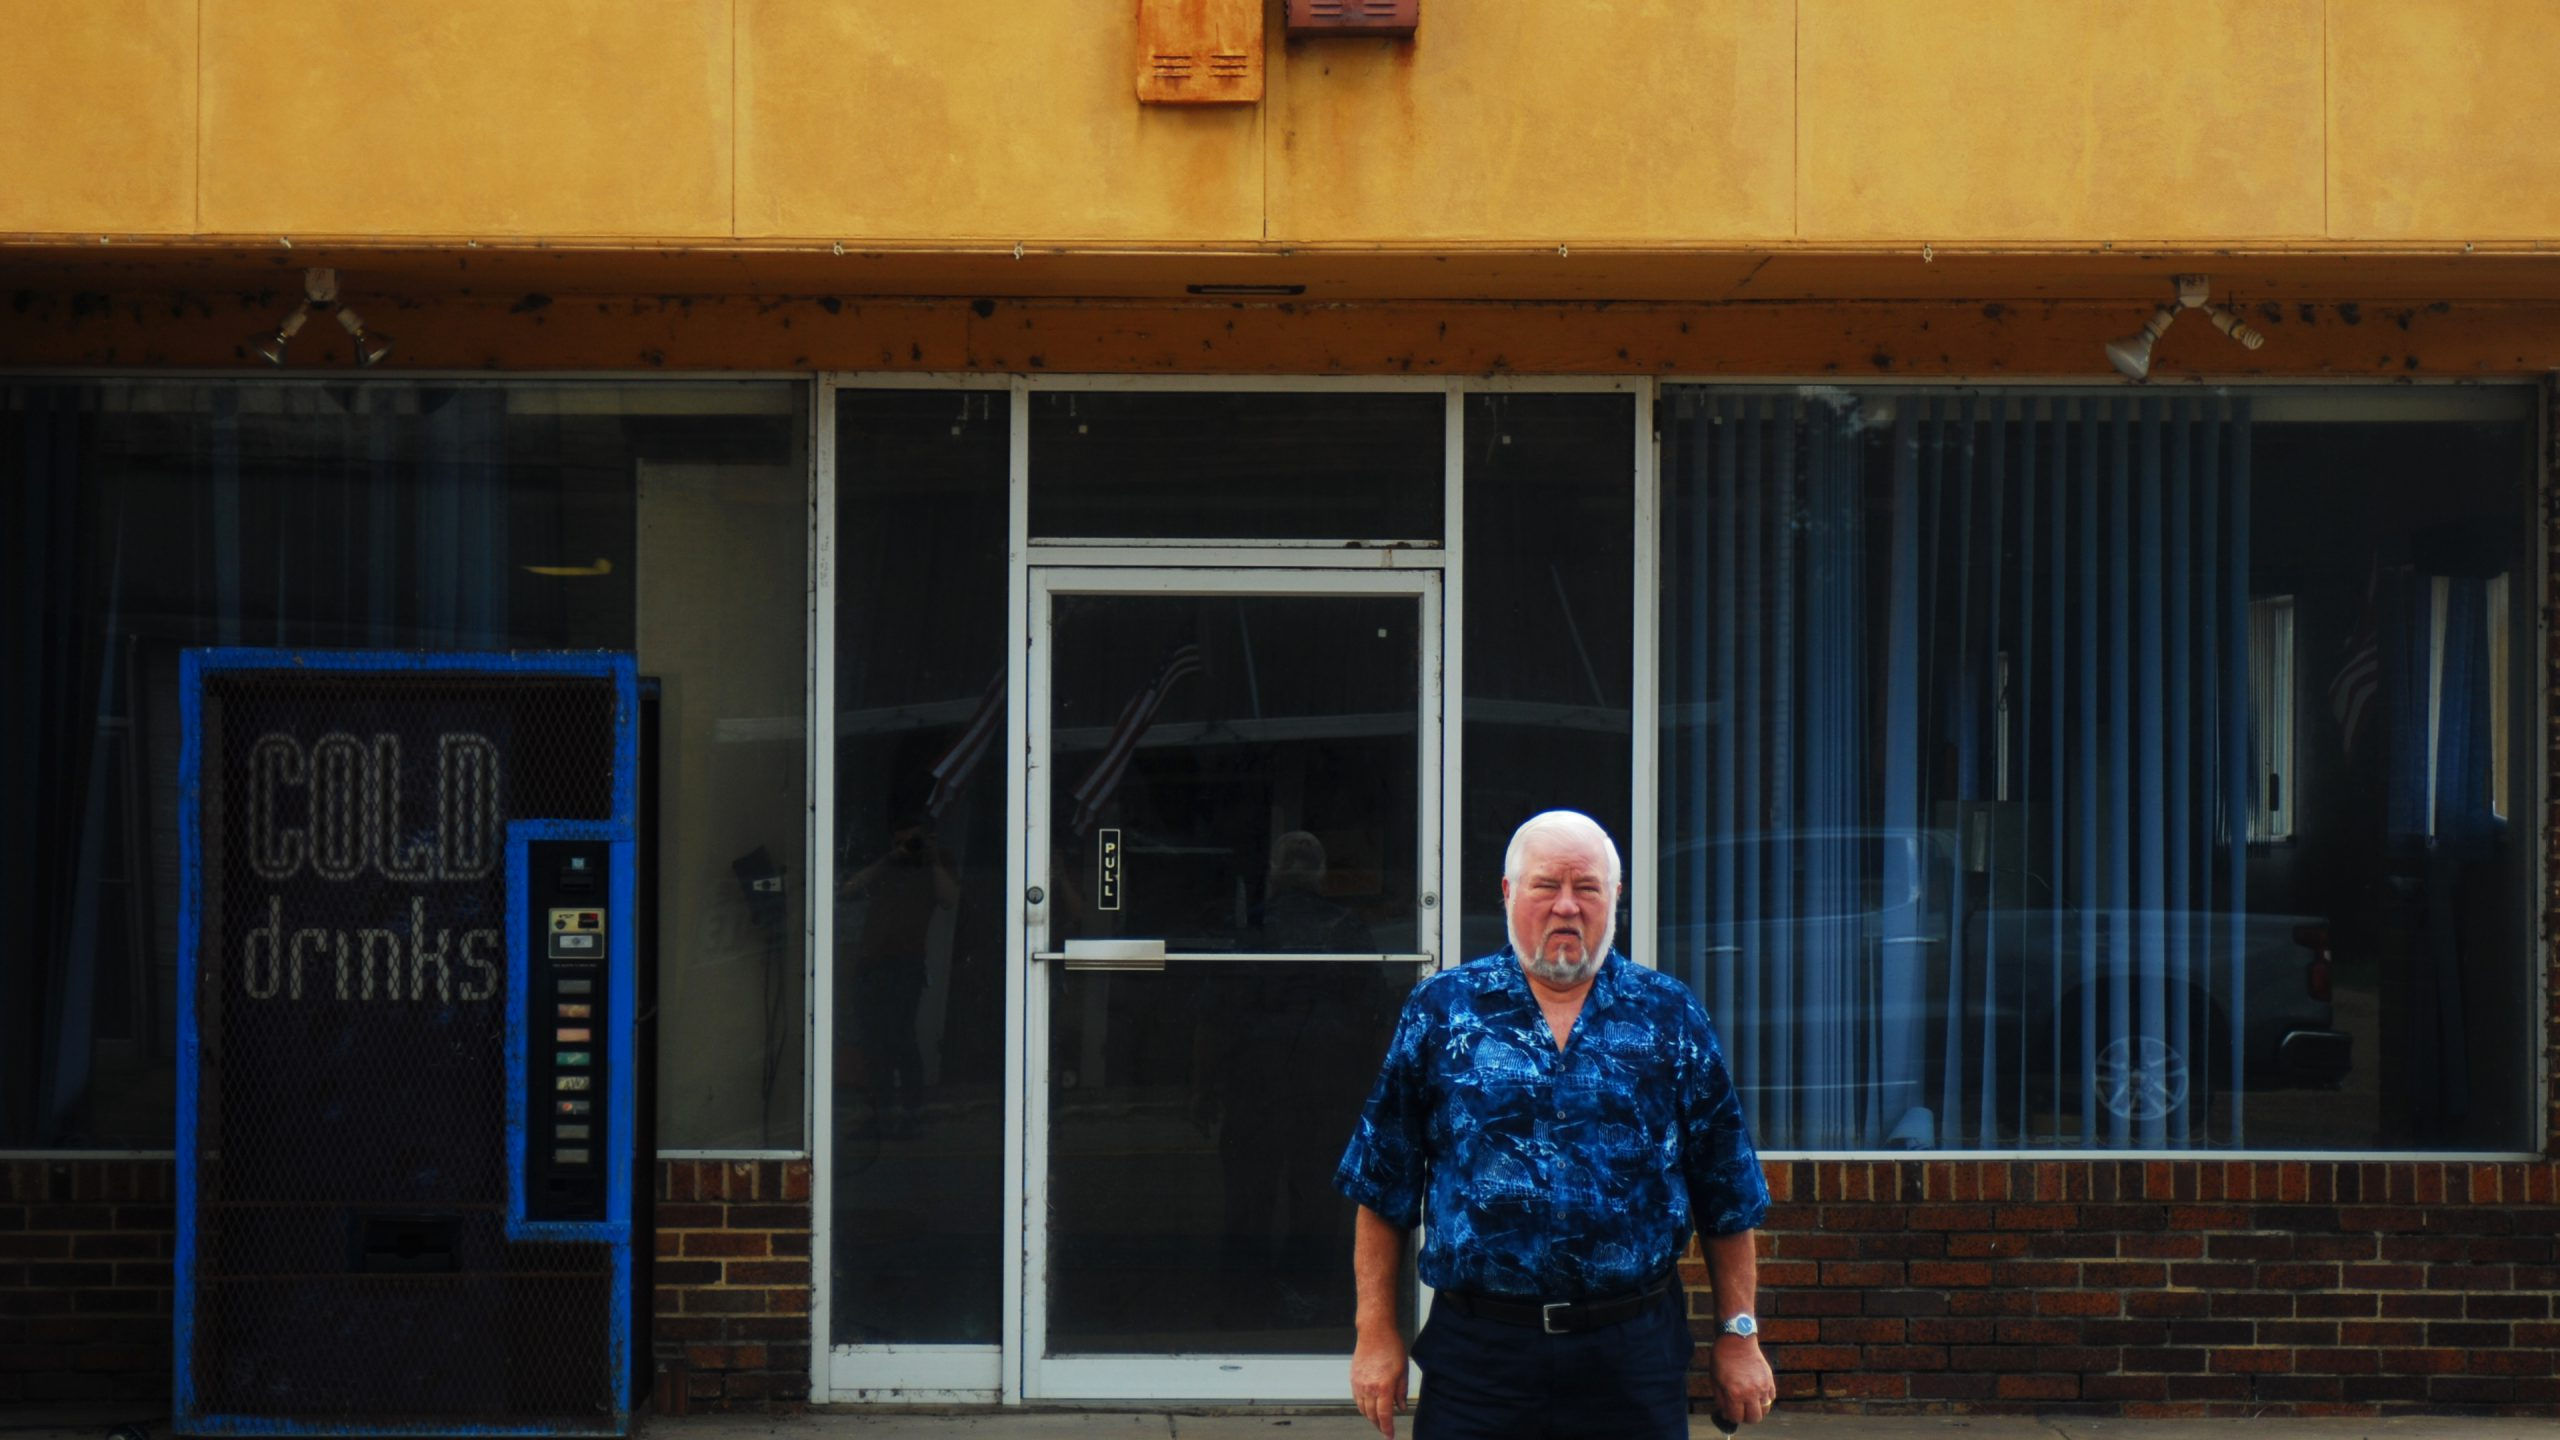 Noel Bailey in front of vacant storefront